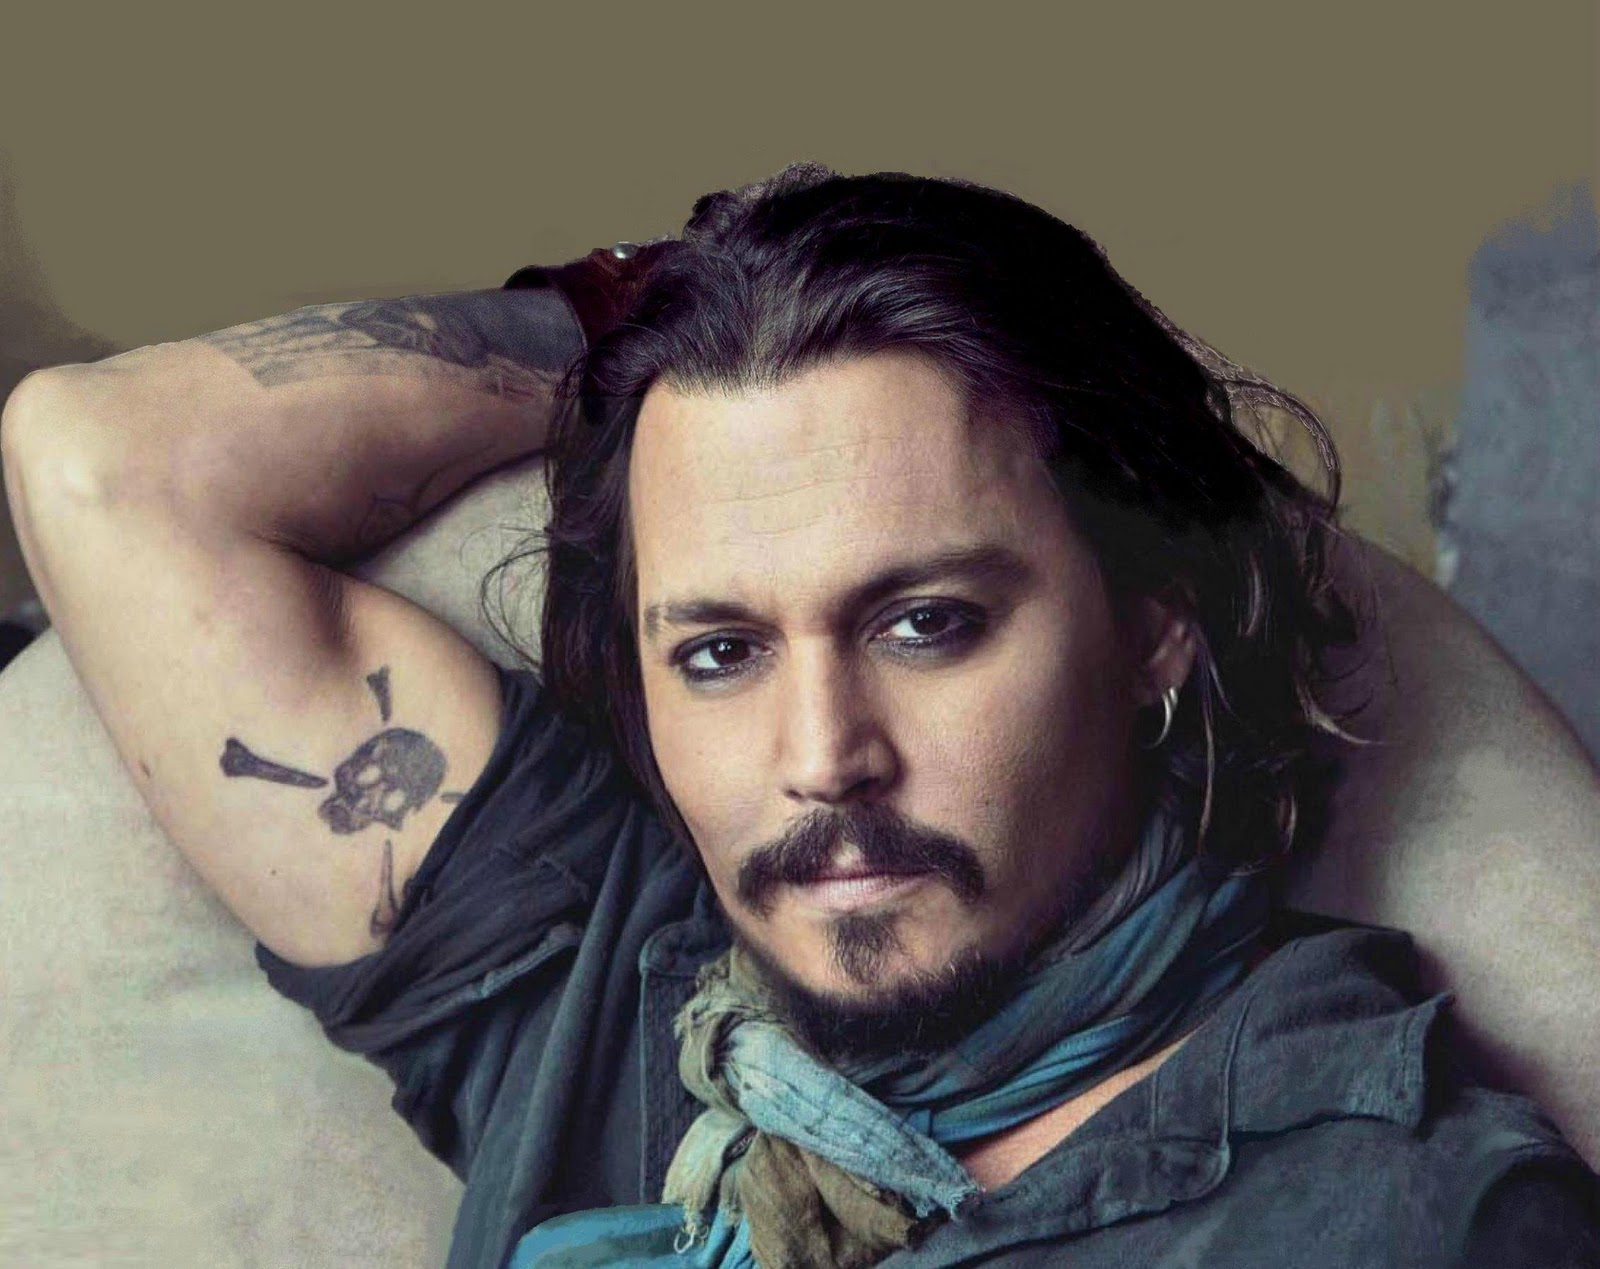 http://3.bp.blogspot.com/-HYumlDu5xUs/TyTt36bBVSI/AAAAAAAAAB4/jm8qBuml2y4/s1600/Favorite%20Celebrity%20Tattoo%20Design%20Johnny%20Depp%20or%20better%20known%20as%20Jack%20sparrow%20from%20Pirates%20of%20the%20Caribbean.jpg